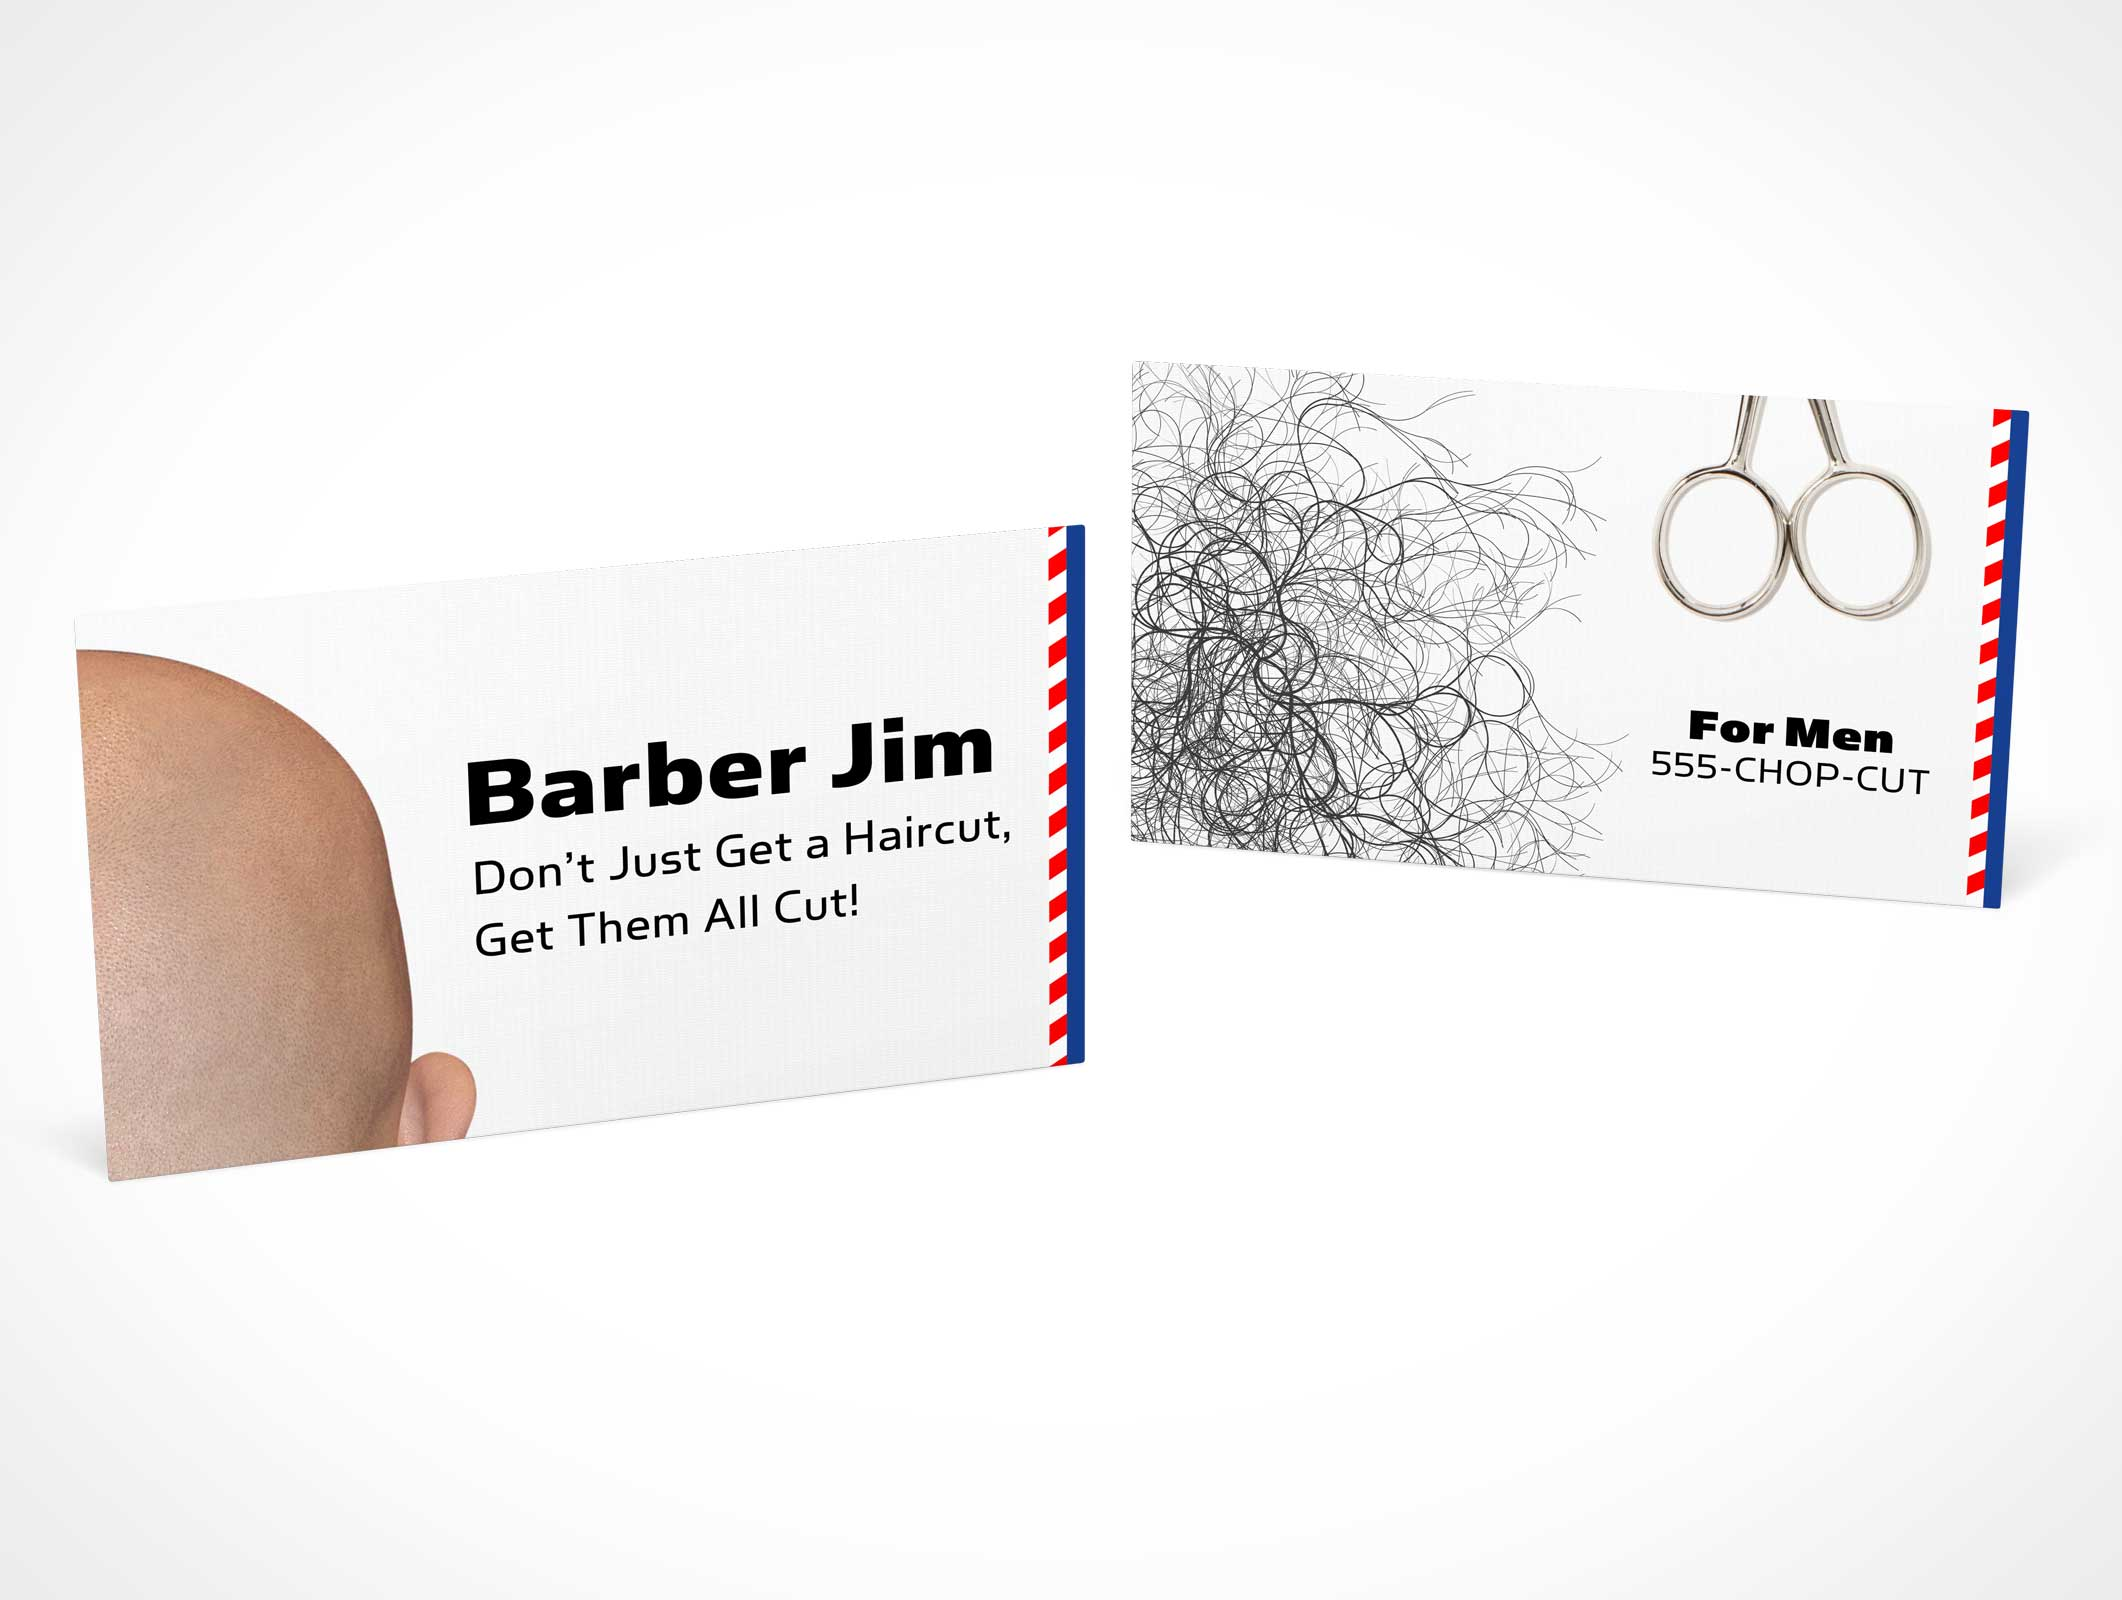 Business Card Archives • Page 2 of 4 • PSDCovers